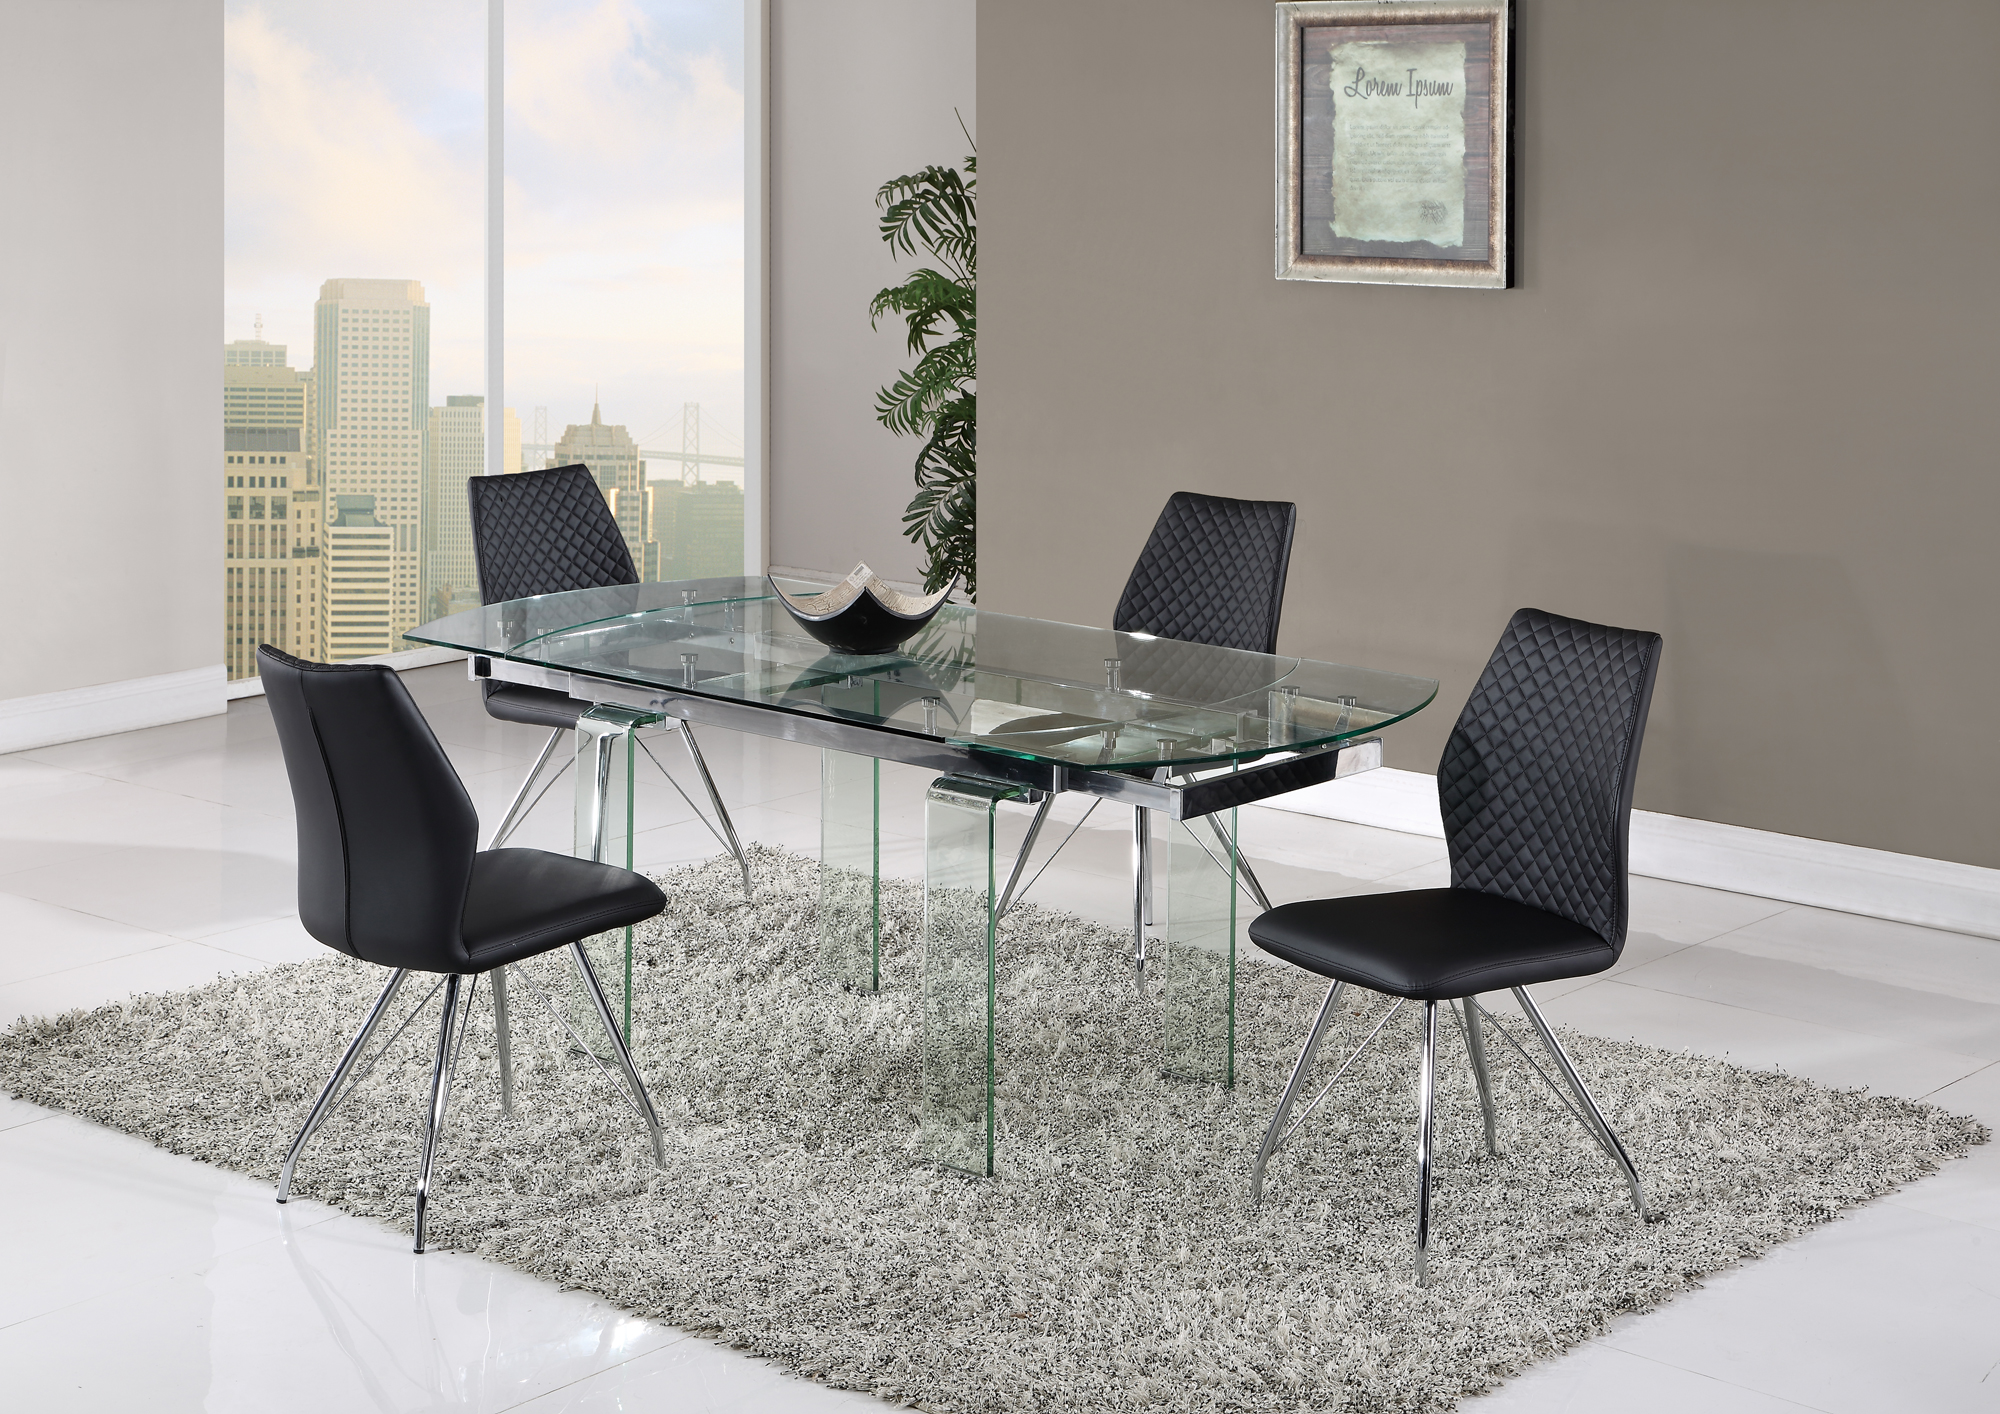 Dining Table D2160DT Clear by Global Furniture : D2160DT D6664DC BL from futonland.com size 2000 x 1414 jpeg 1787kB